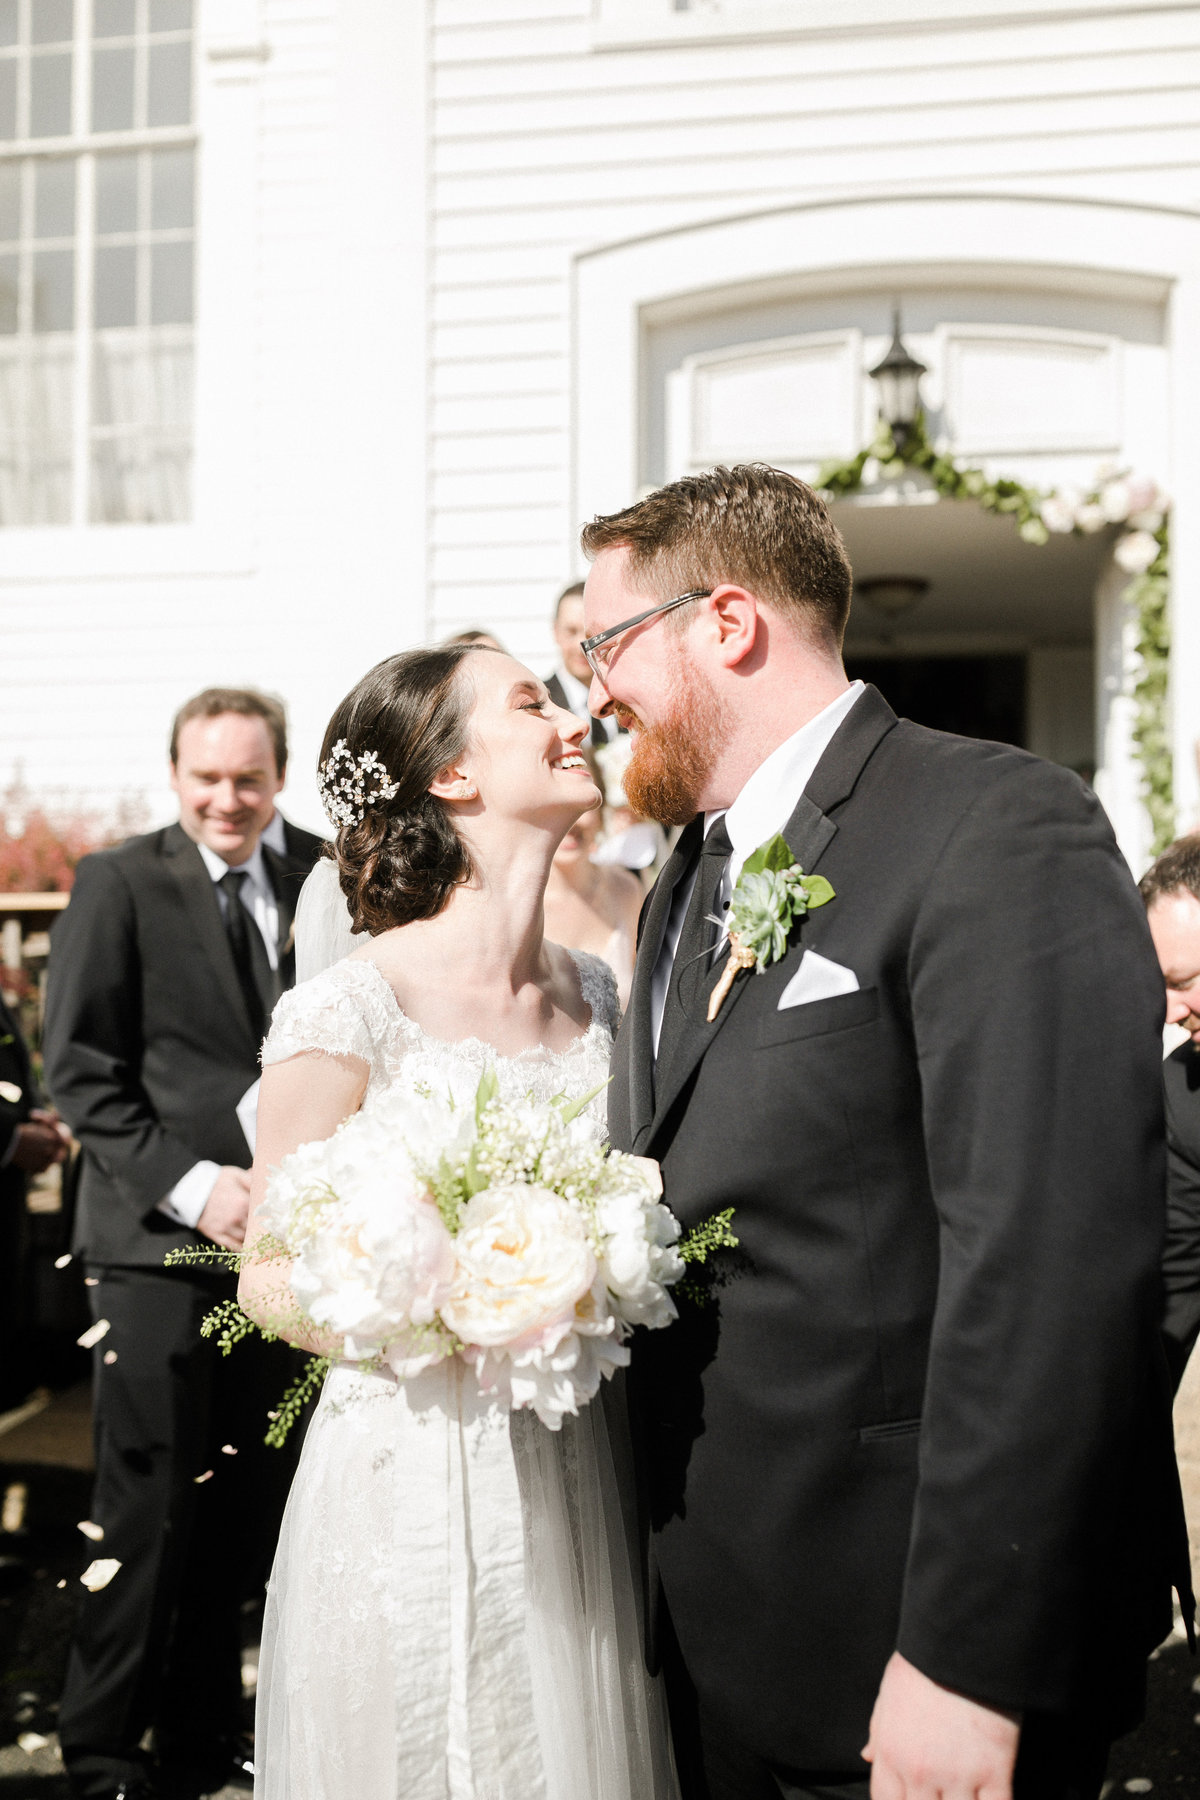 Kate & Jack_Wedding_Ceremony_1270